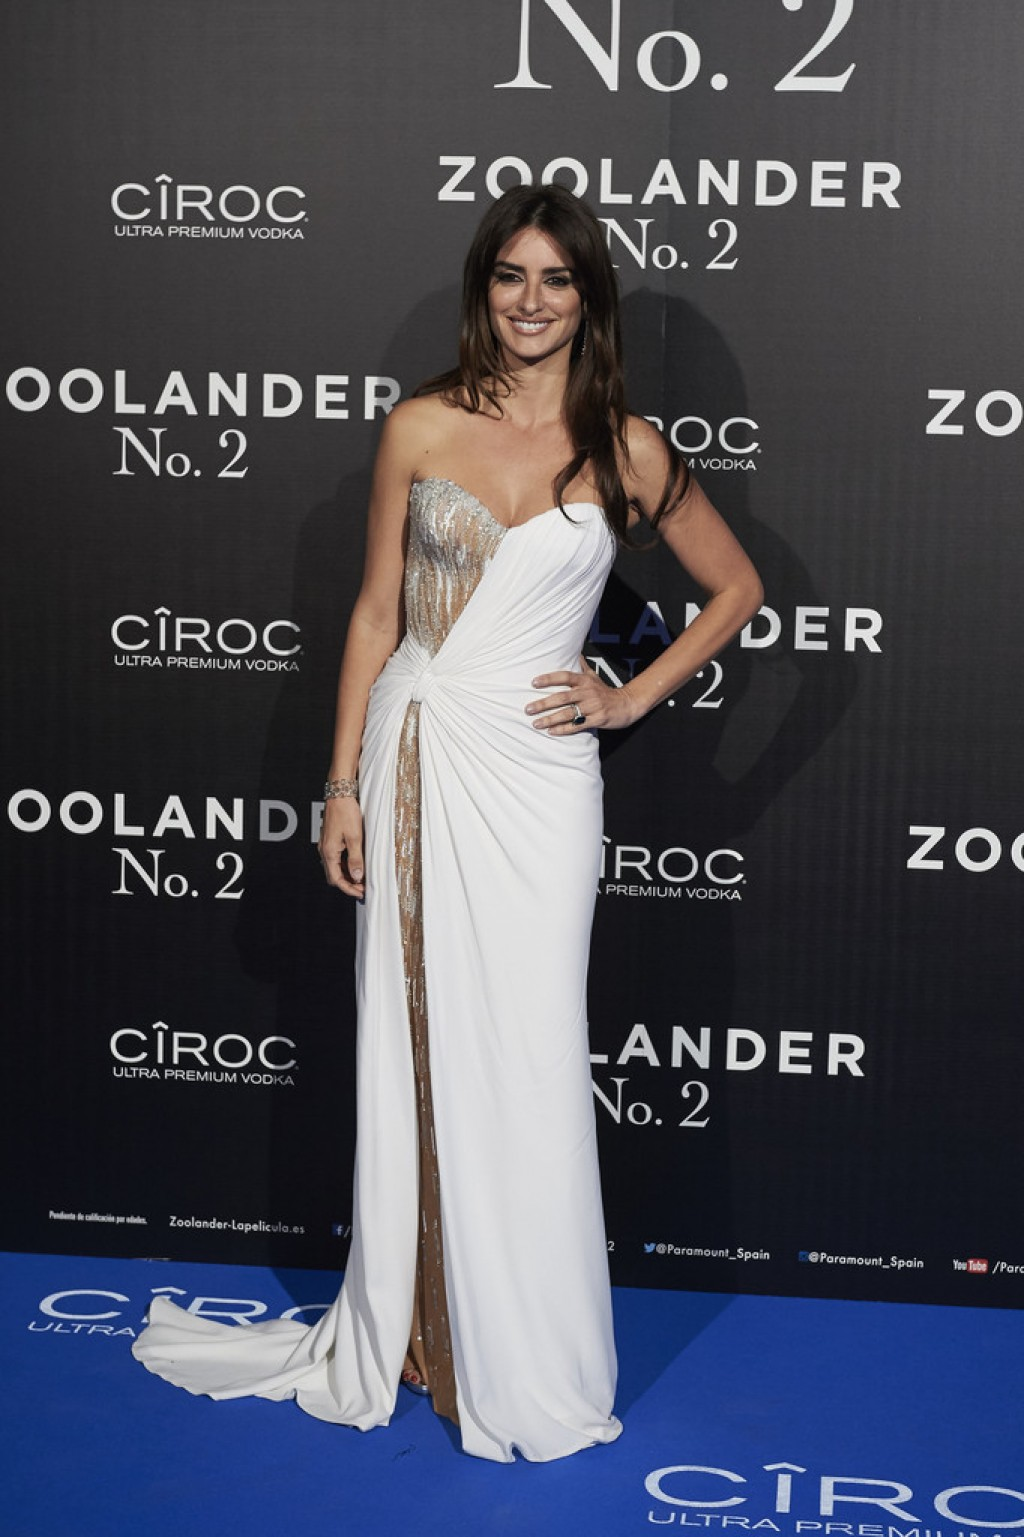 Zoolander-2-Madrid-Fan-Screening-Penelope-Cruz-Dress-Versace-1024x1537